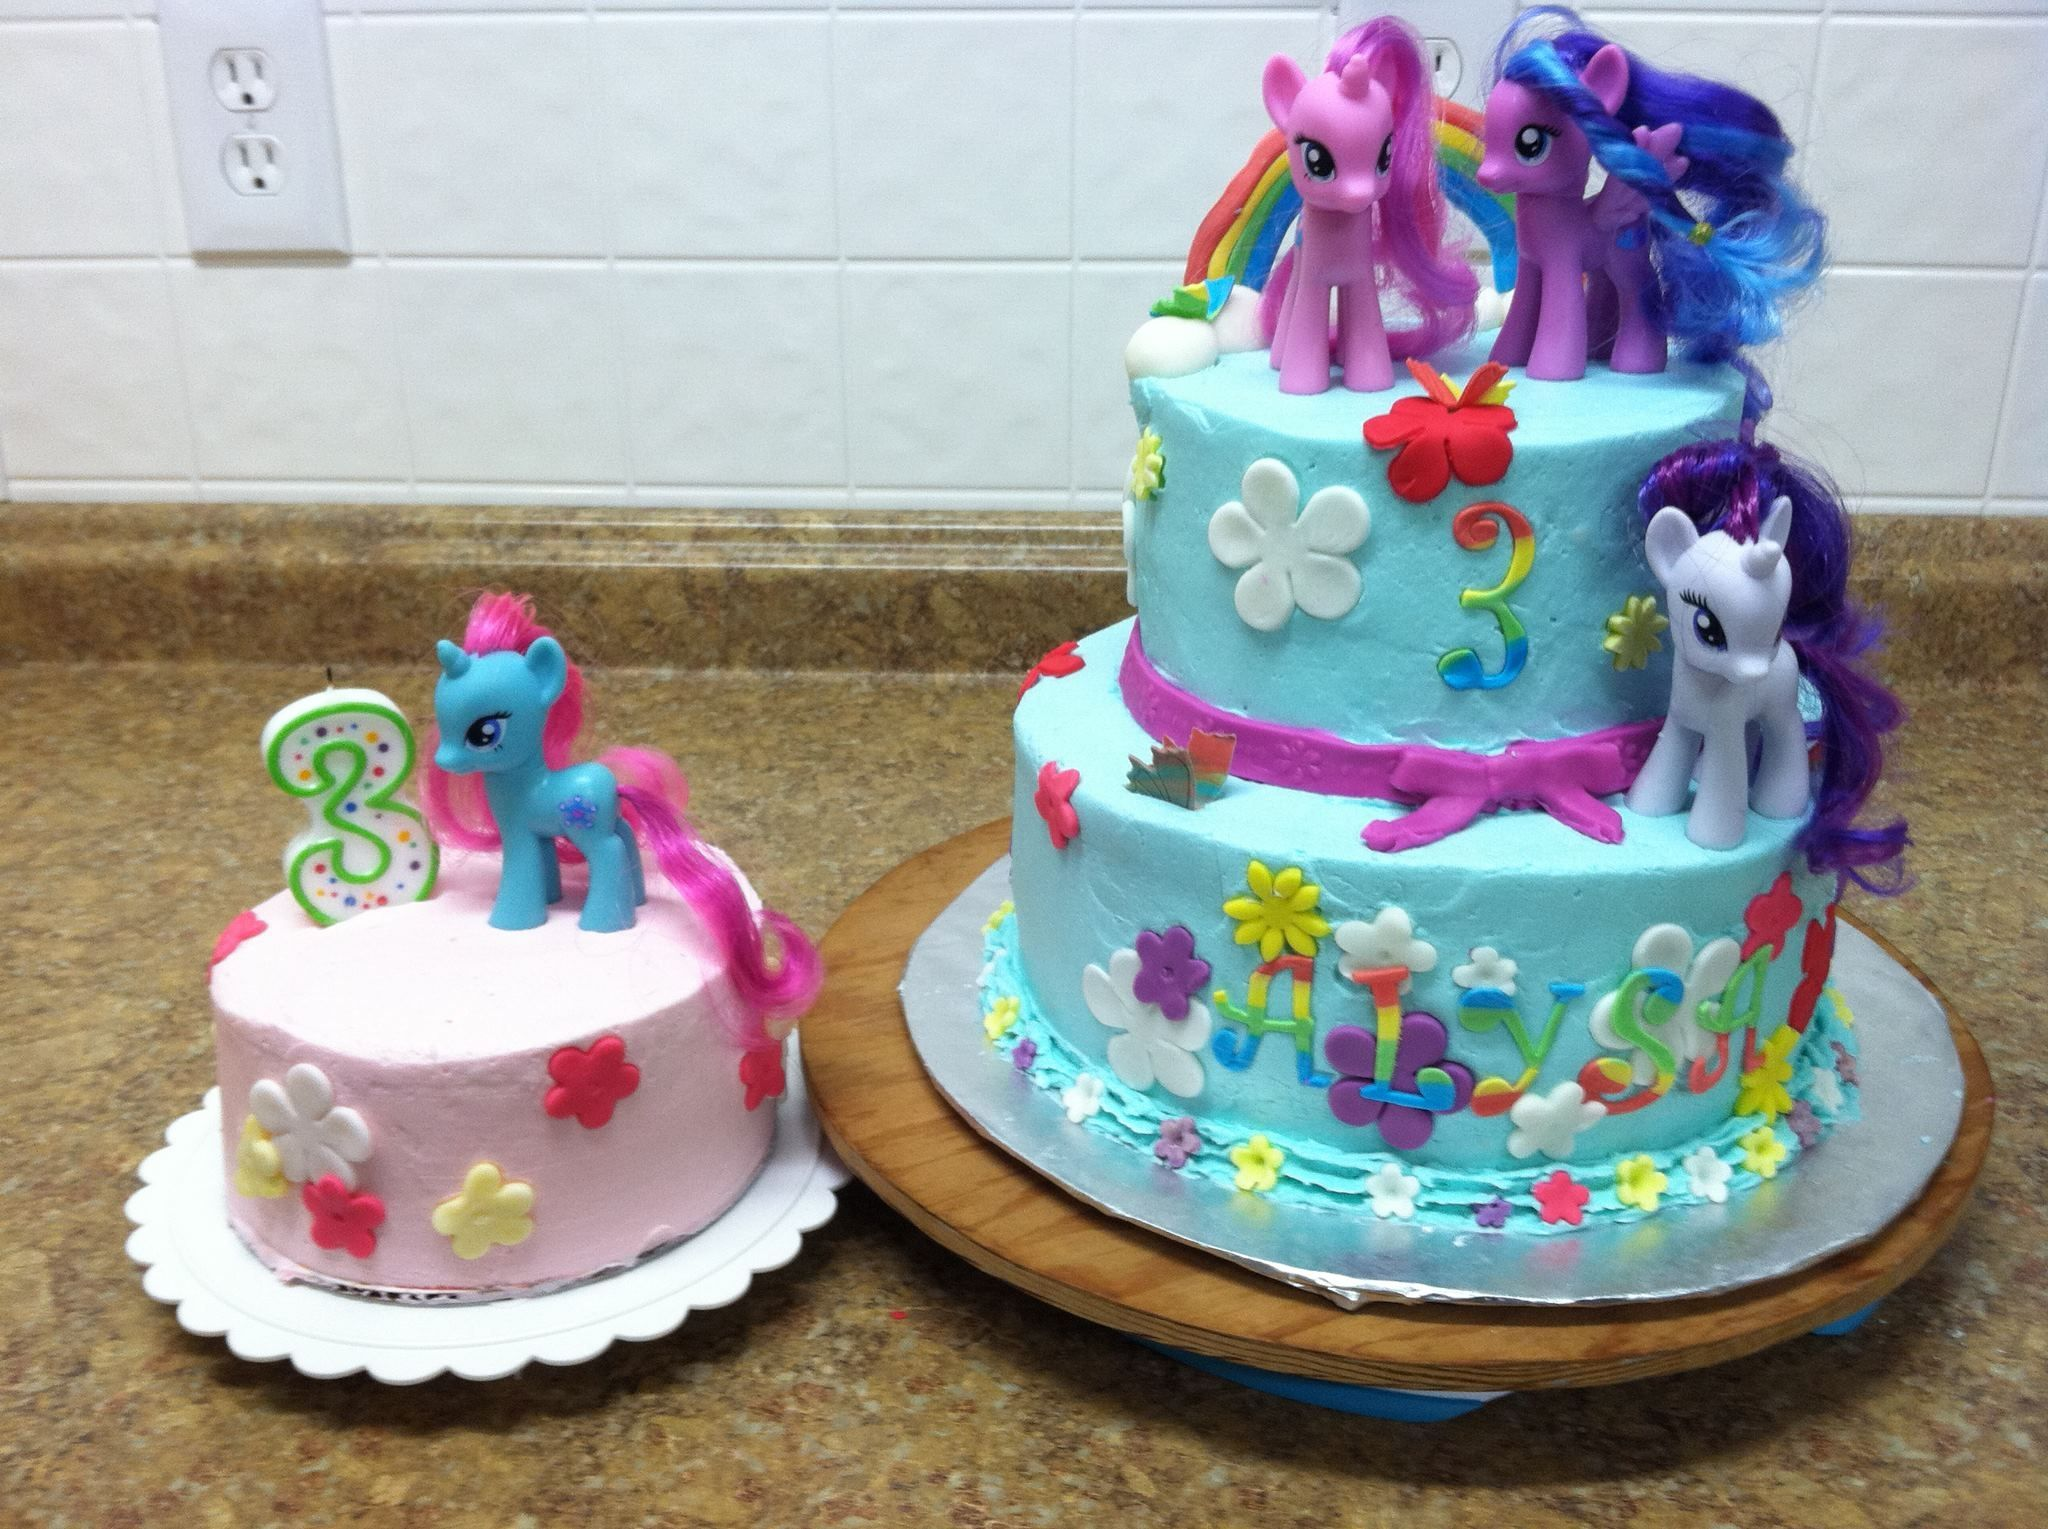 My Little Pony - This cake was for my niece's 3rd birthday party.  It is a WASC but colored rainbow with buttercream frosting.  LOTS of problems with this cake.  I couldn't get the buttercream smooth, then when I tried to do the Viva towel method (never tried it before) it only made it worse.  Then when I go to take it to my sister's house my fist went right into the side of it!  So I had to make a bunch more fondant flowers to cover.  She was happy though!